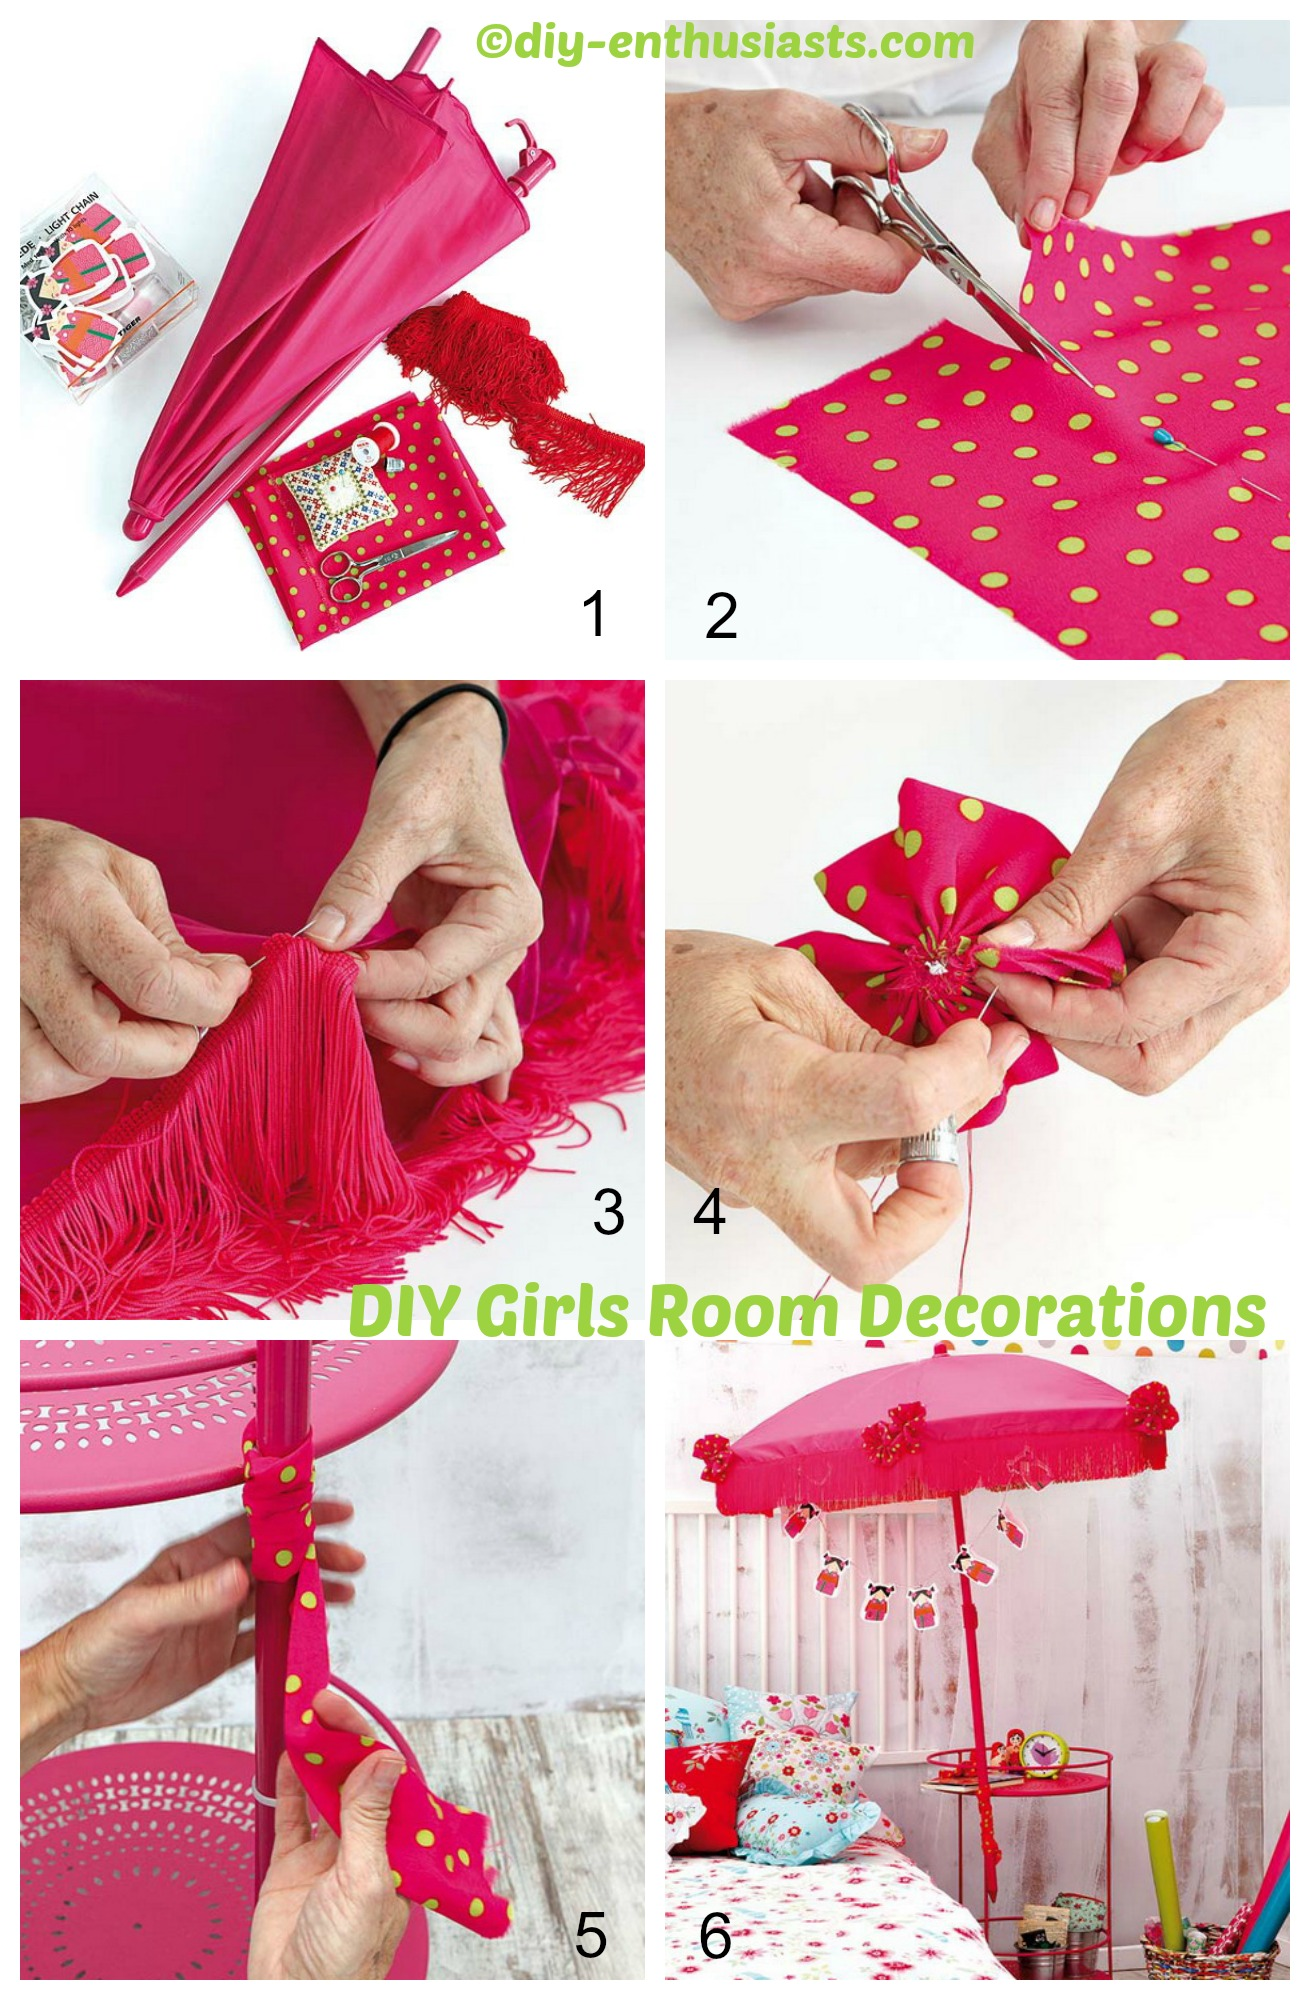 Girls room decorations diy home tutorials for The make room